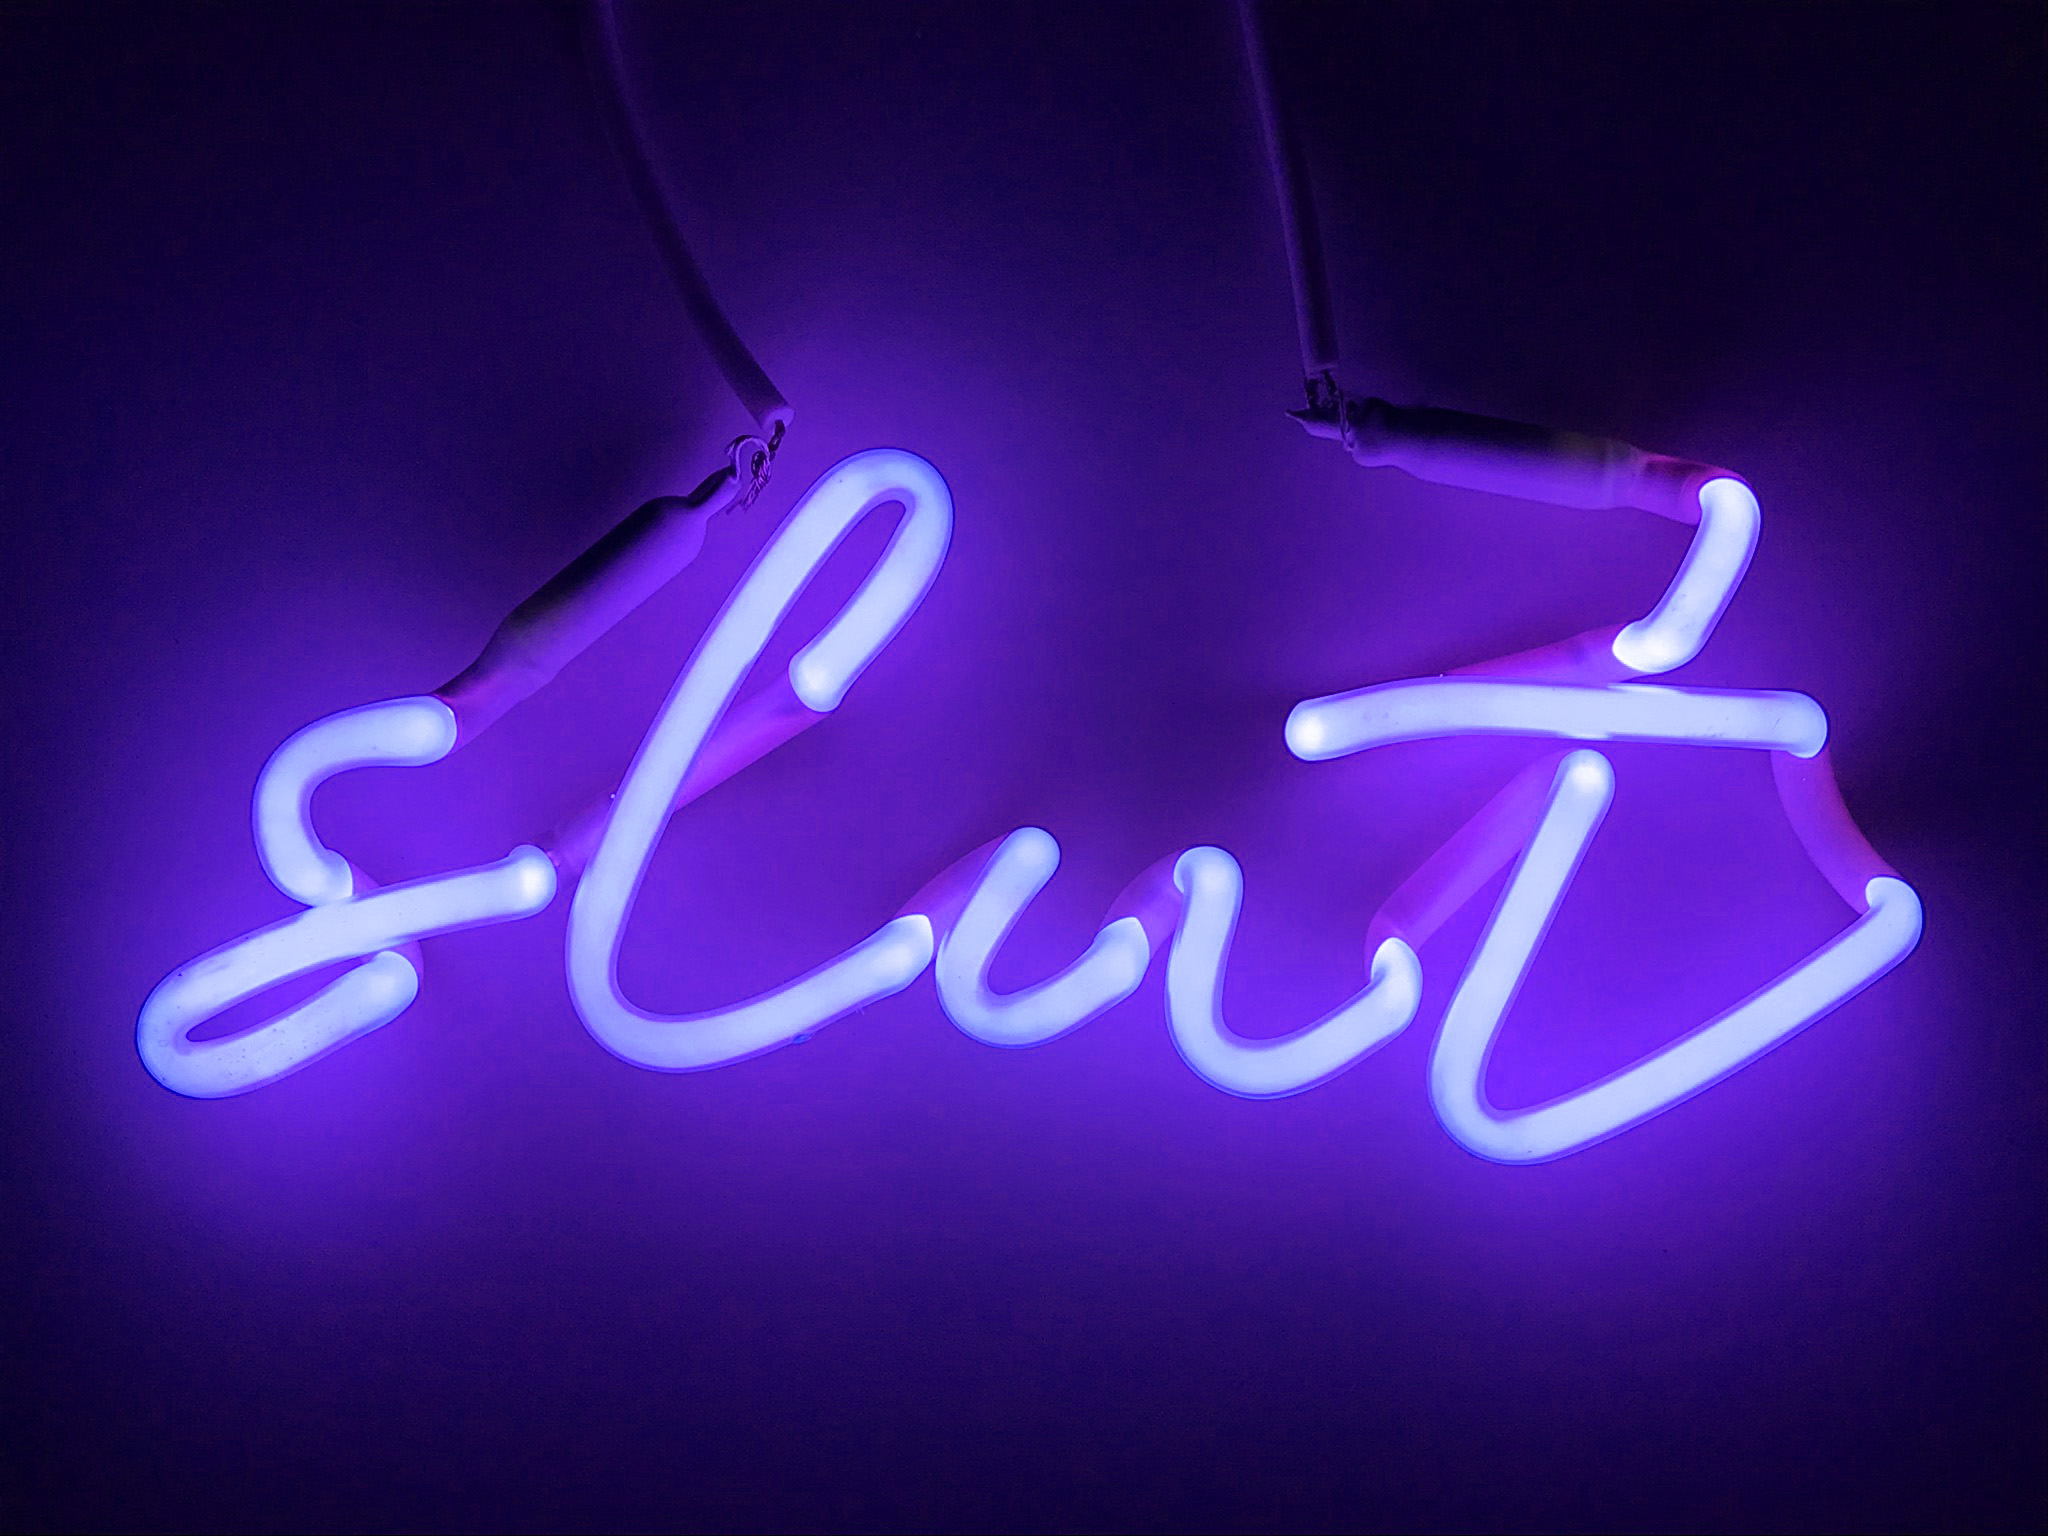 INDIRA-CESARINE_slut-violet_-NEON-LIGHT-SCULPTURE_2018.jpg